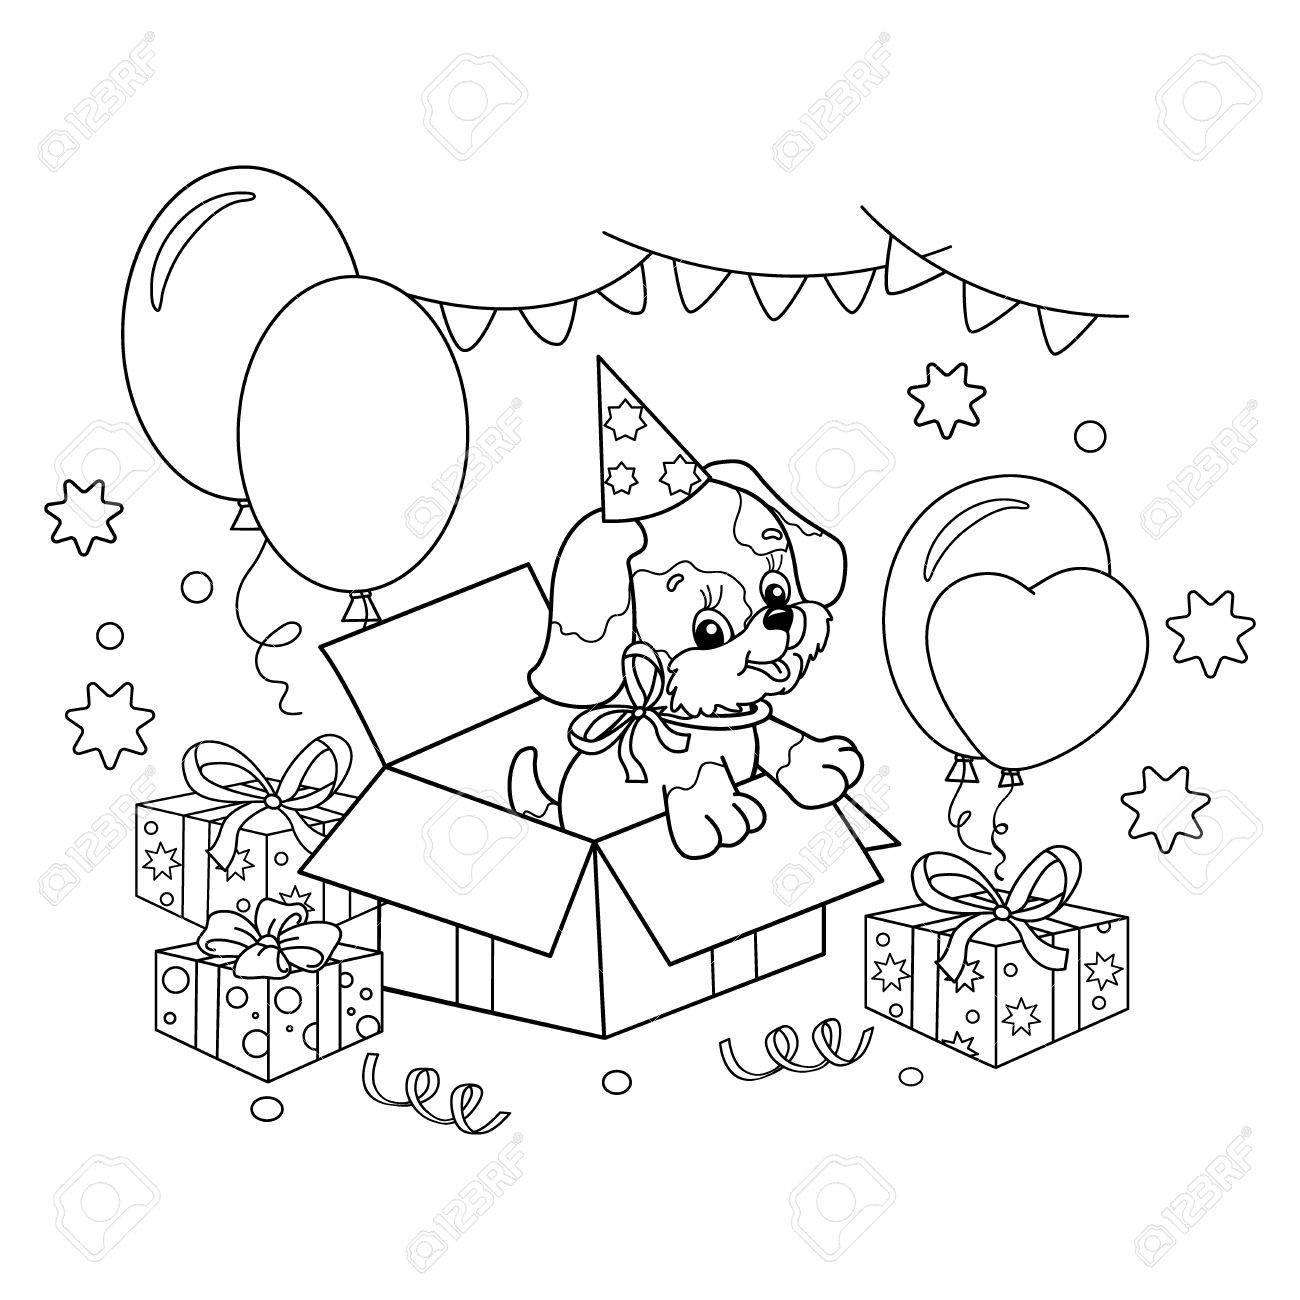 coloring page outline of cute puppy cartoon dog with bow gift for the holiday